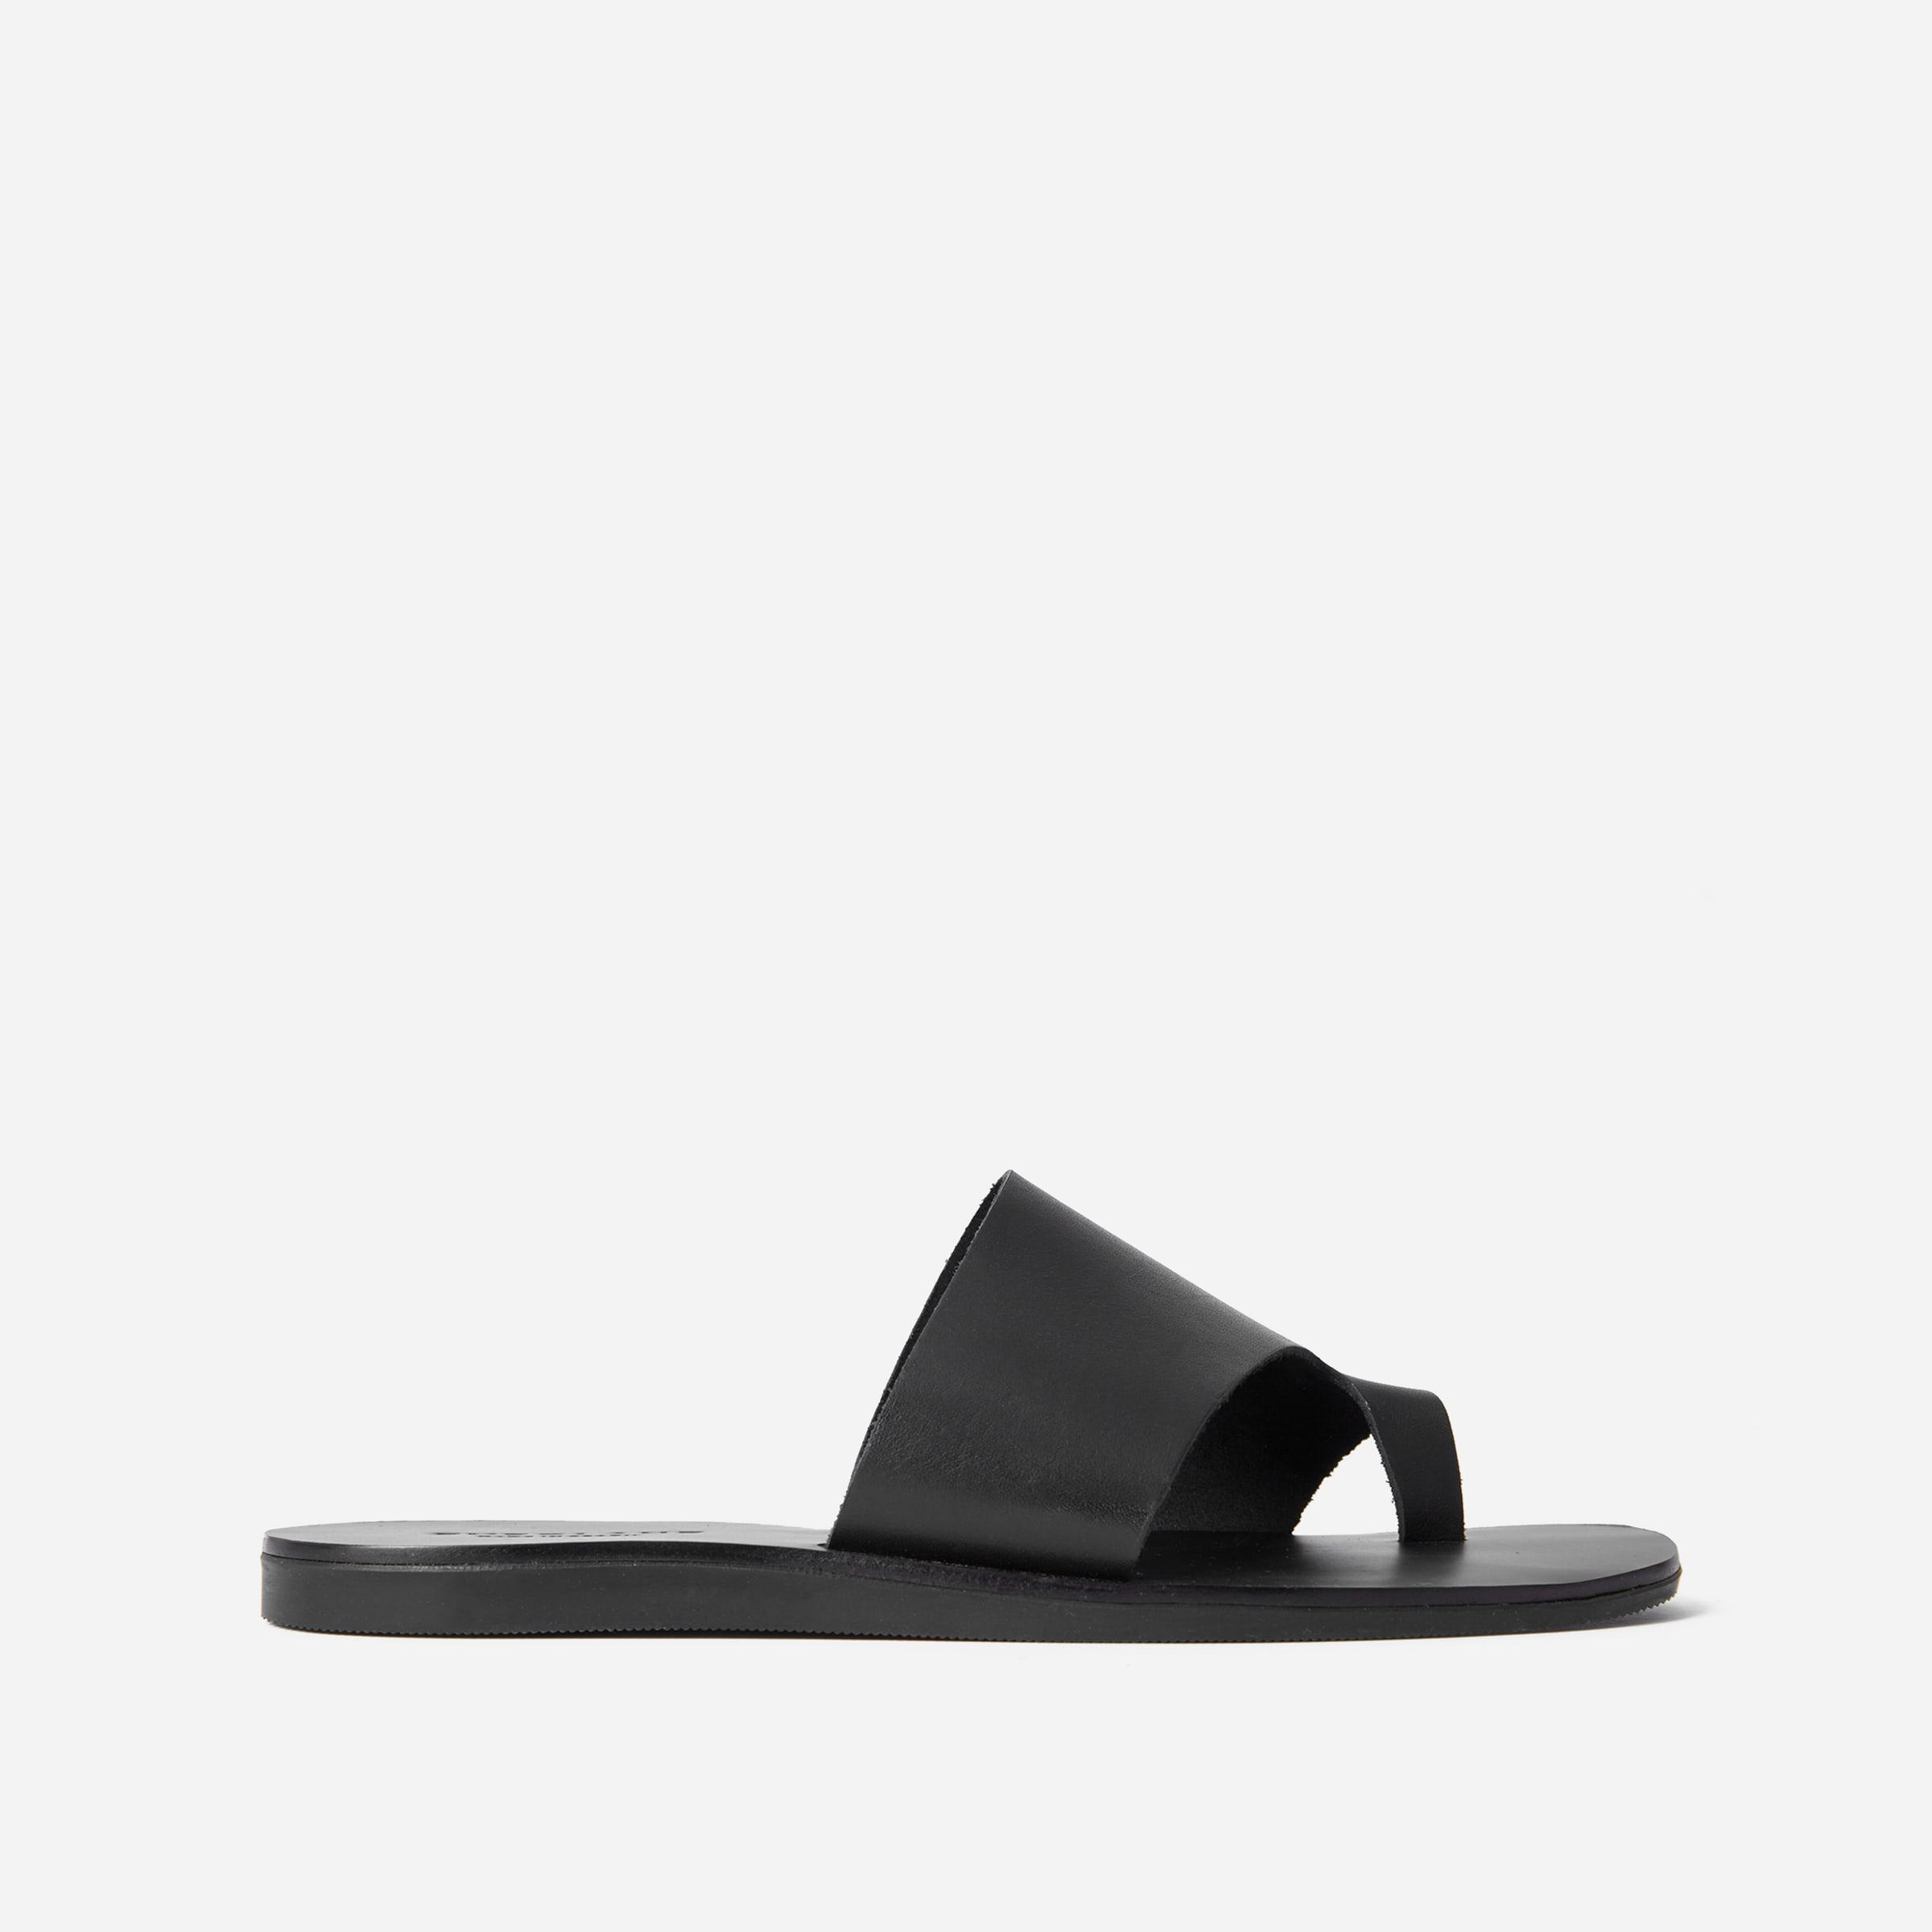 The Day Toe-Post Sandal